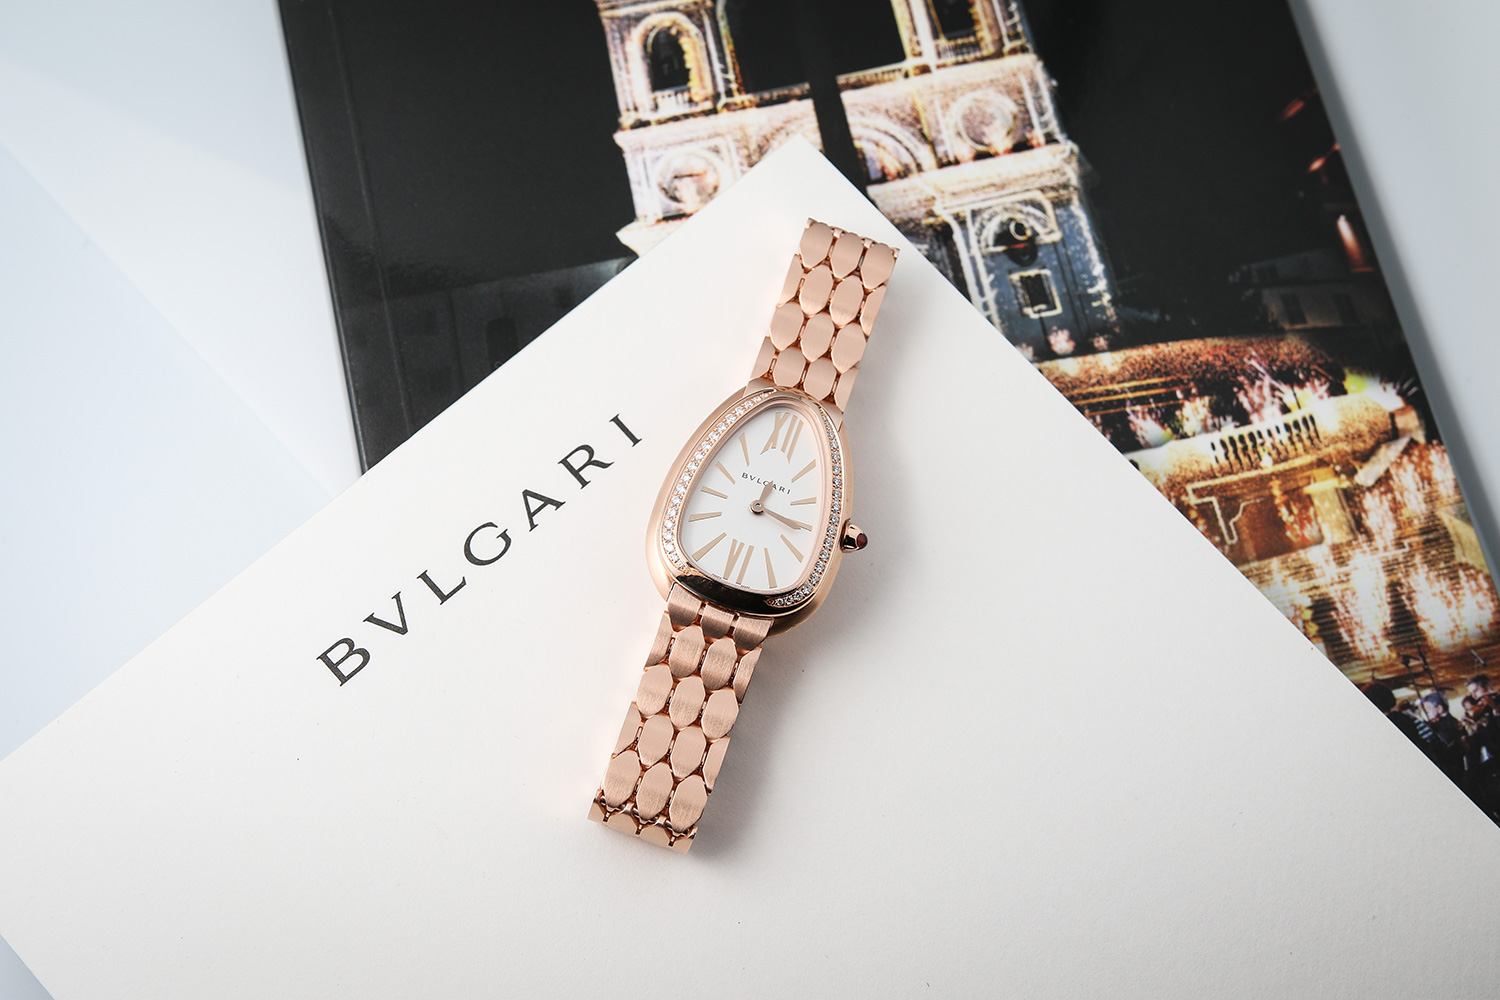 Bvlgari Serpenti Seduttori Pink Gold and Diamonds (Image by Kevin Cureau)